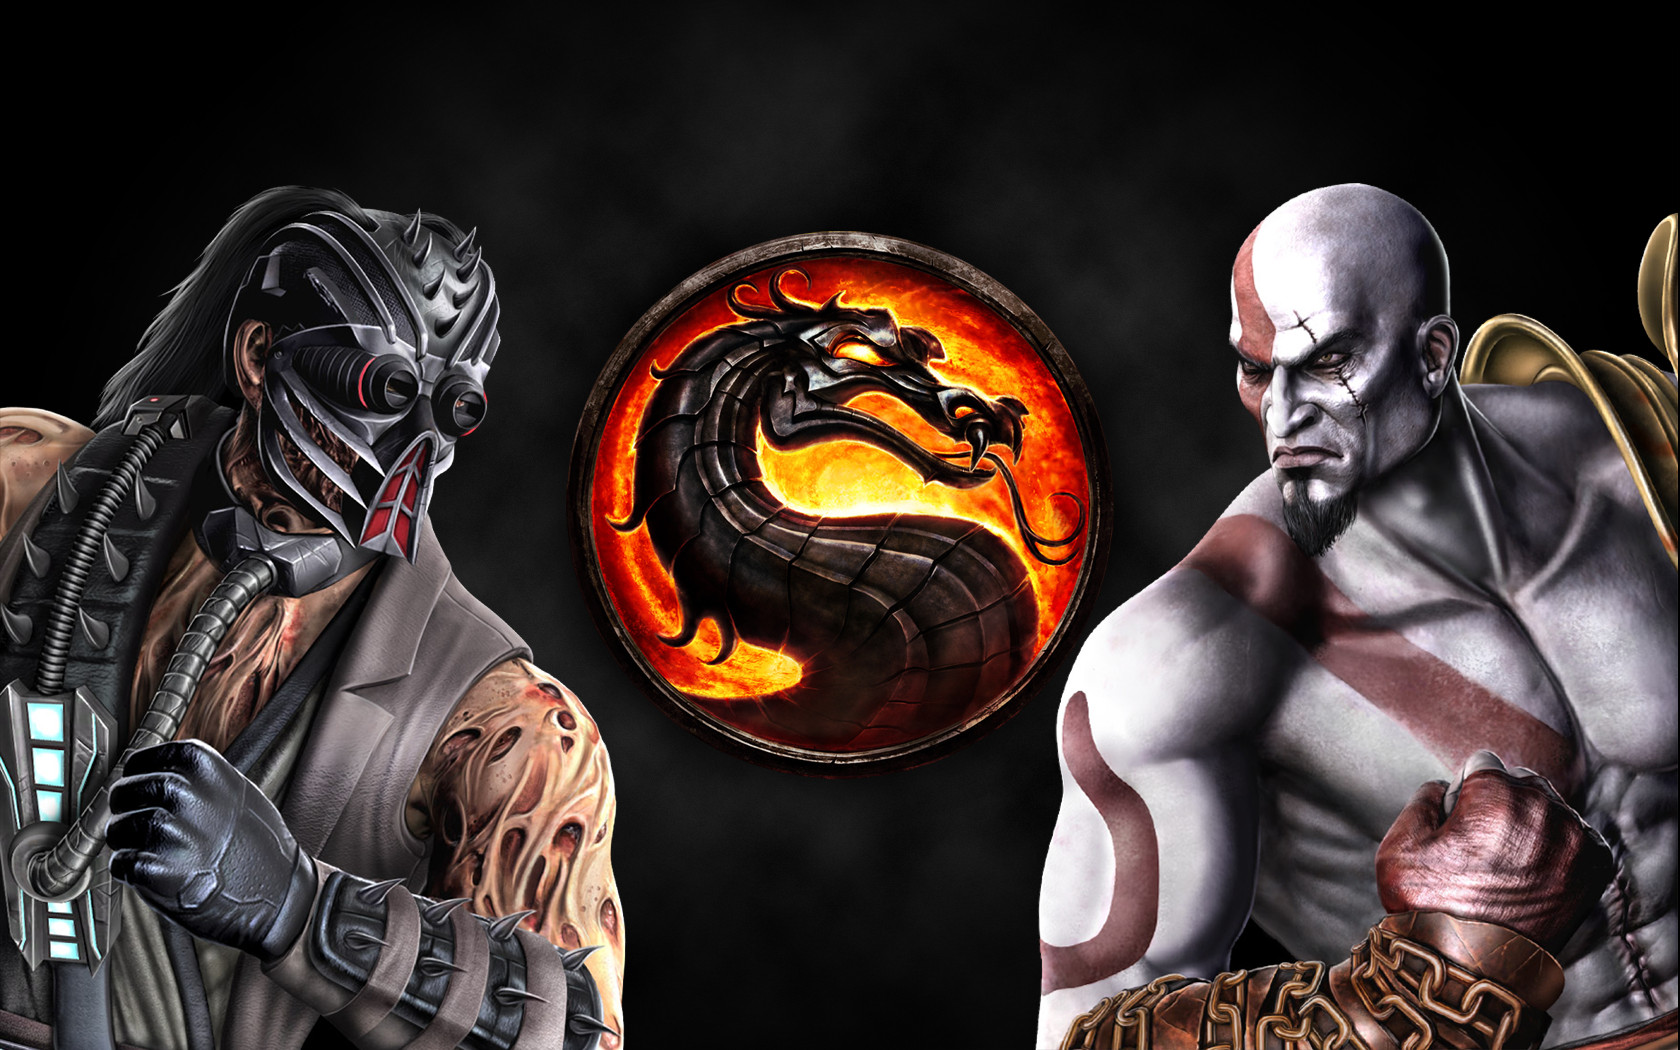 Mortal Kombat 9 Kabal vs Kratos by Nicolae1013 on DeviantArt